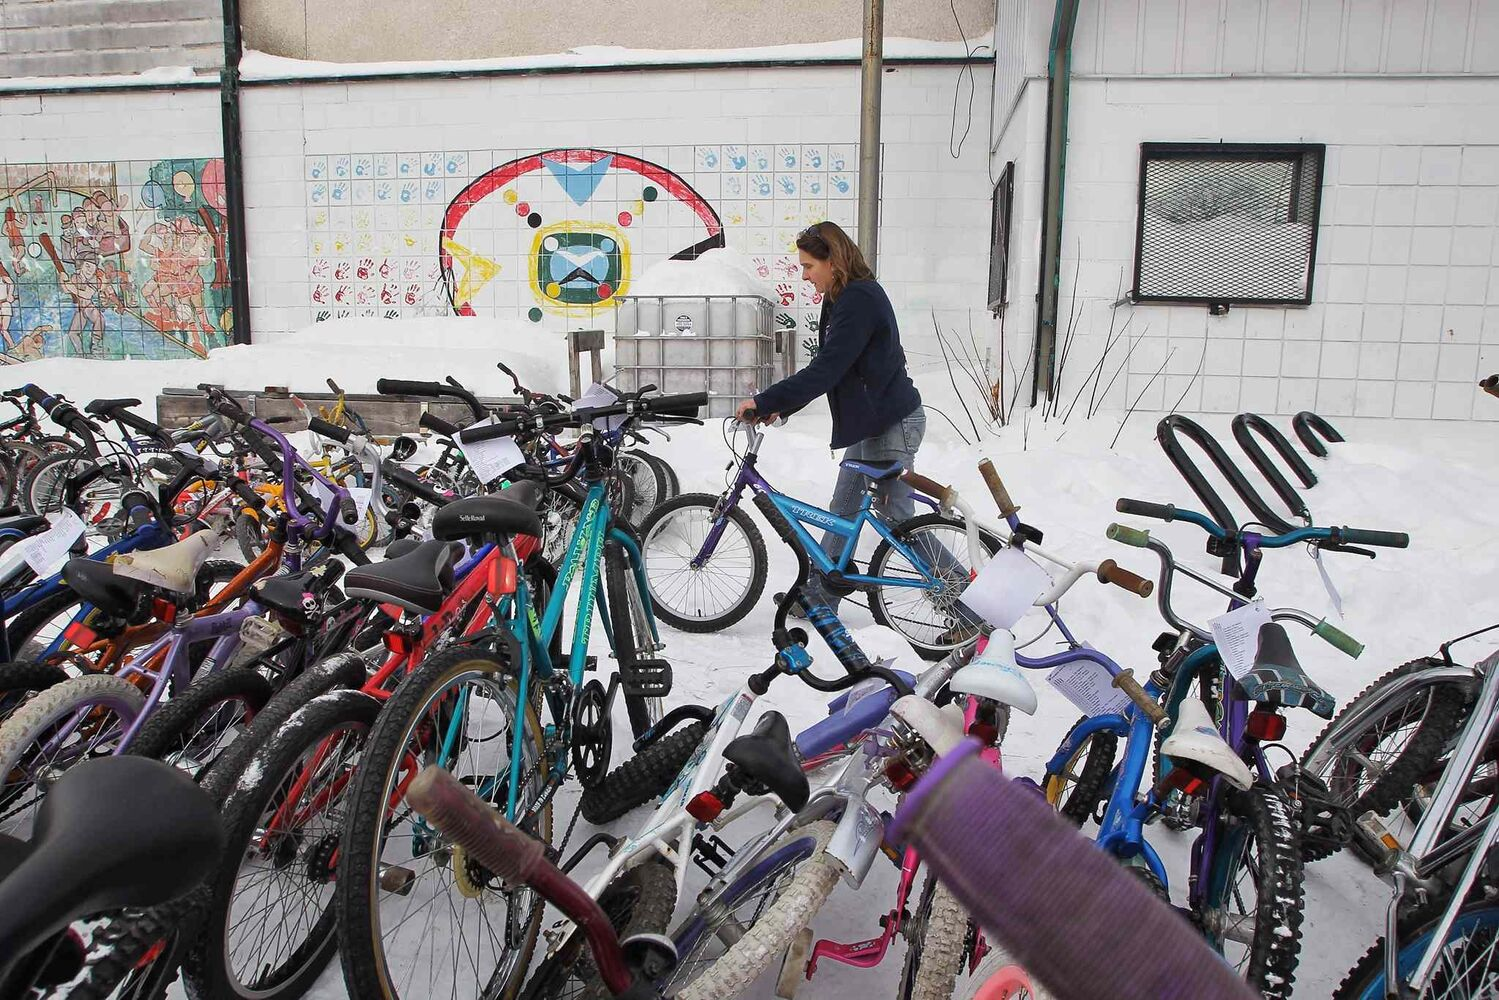 Monica Young takes one of the bikes out to the area where bikes that are ready for pick-up sit at the end of the day. (MIKE DEAL / WINNIPEG FREE PRESS)